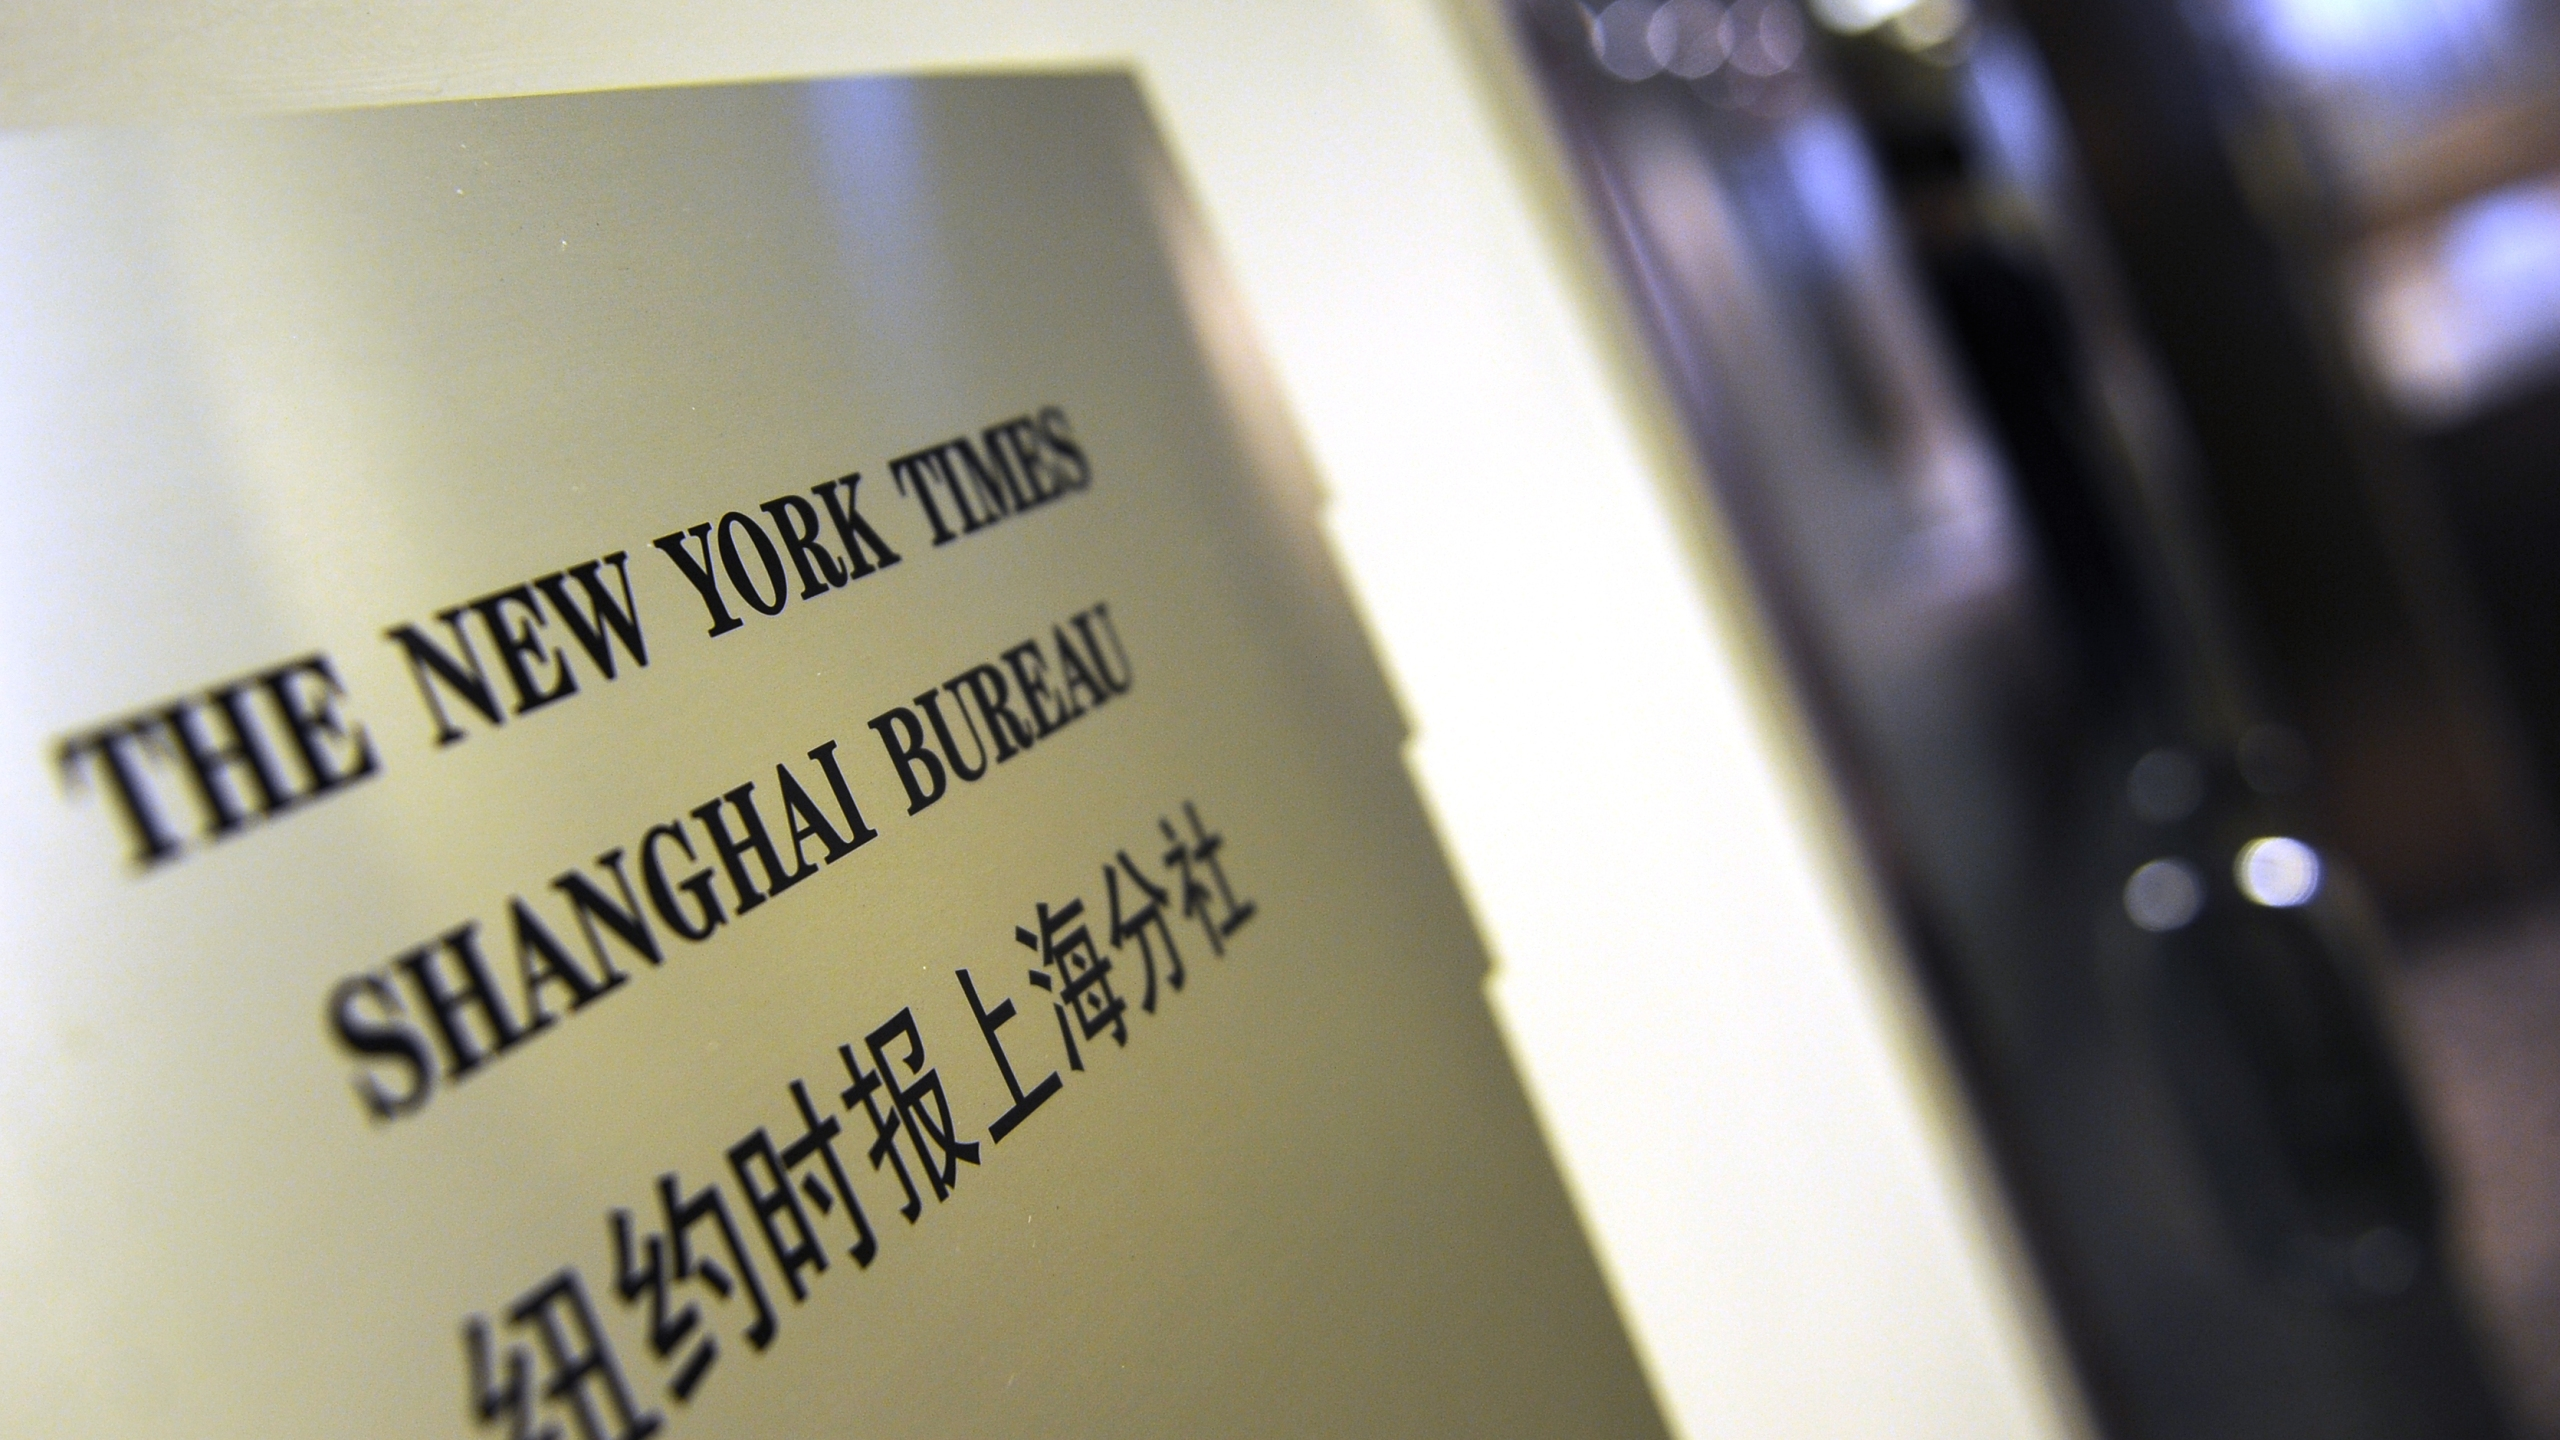 A plaque is seen on the wall outside the New York Times office in Shanghai on Oct. 30, 2012. (PETER PARKS/AFP via Getty Images)